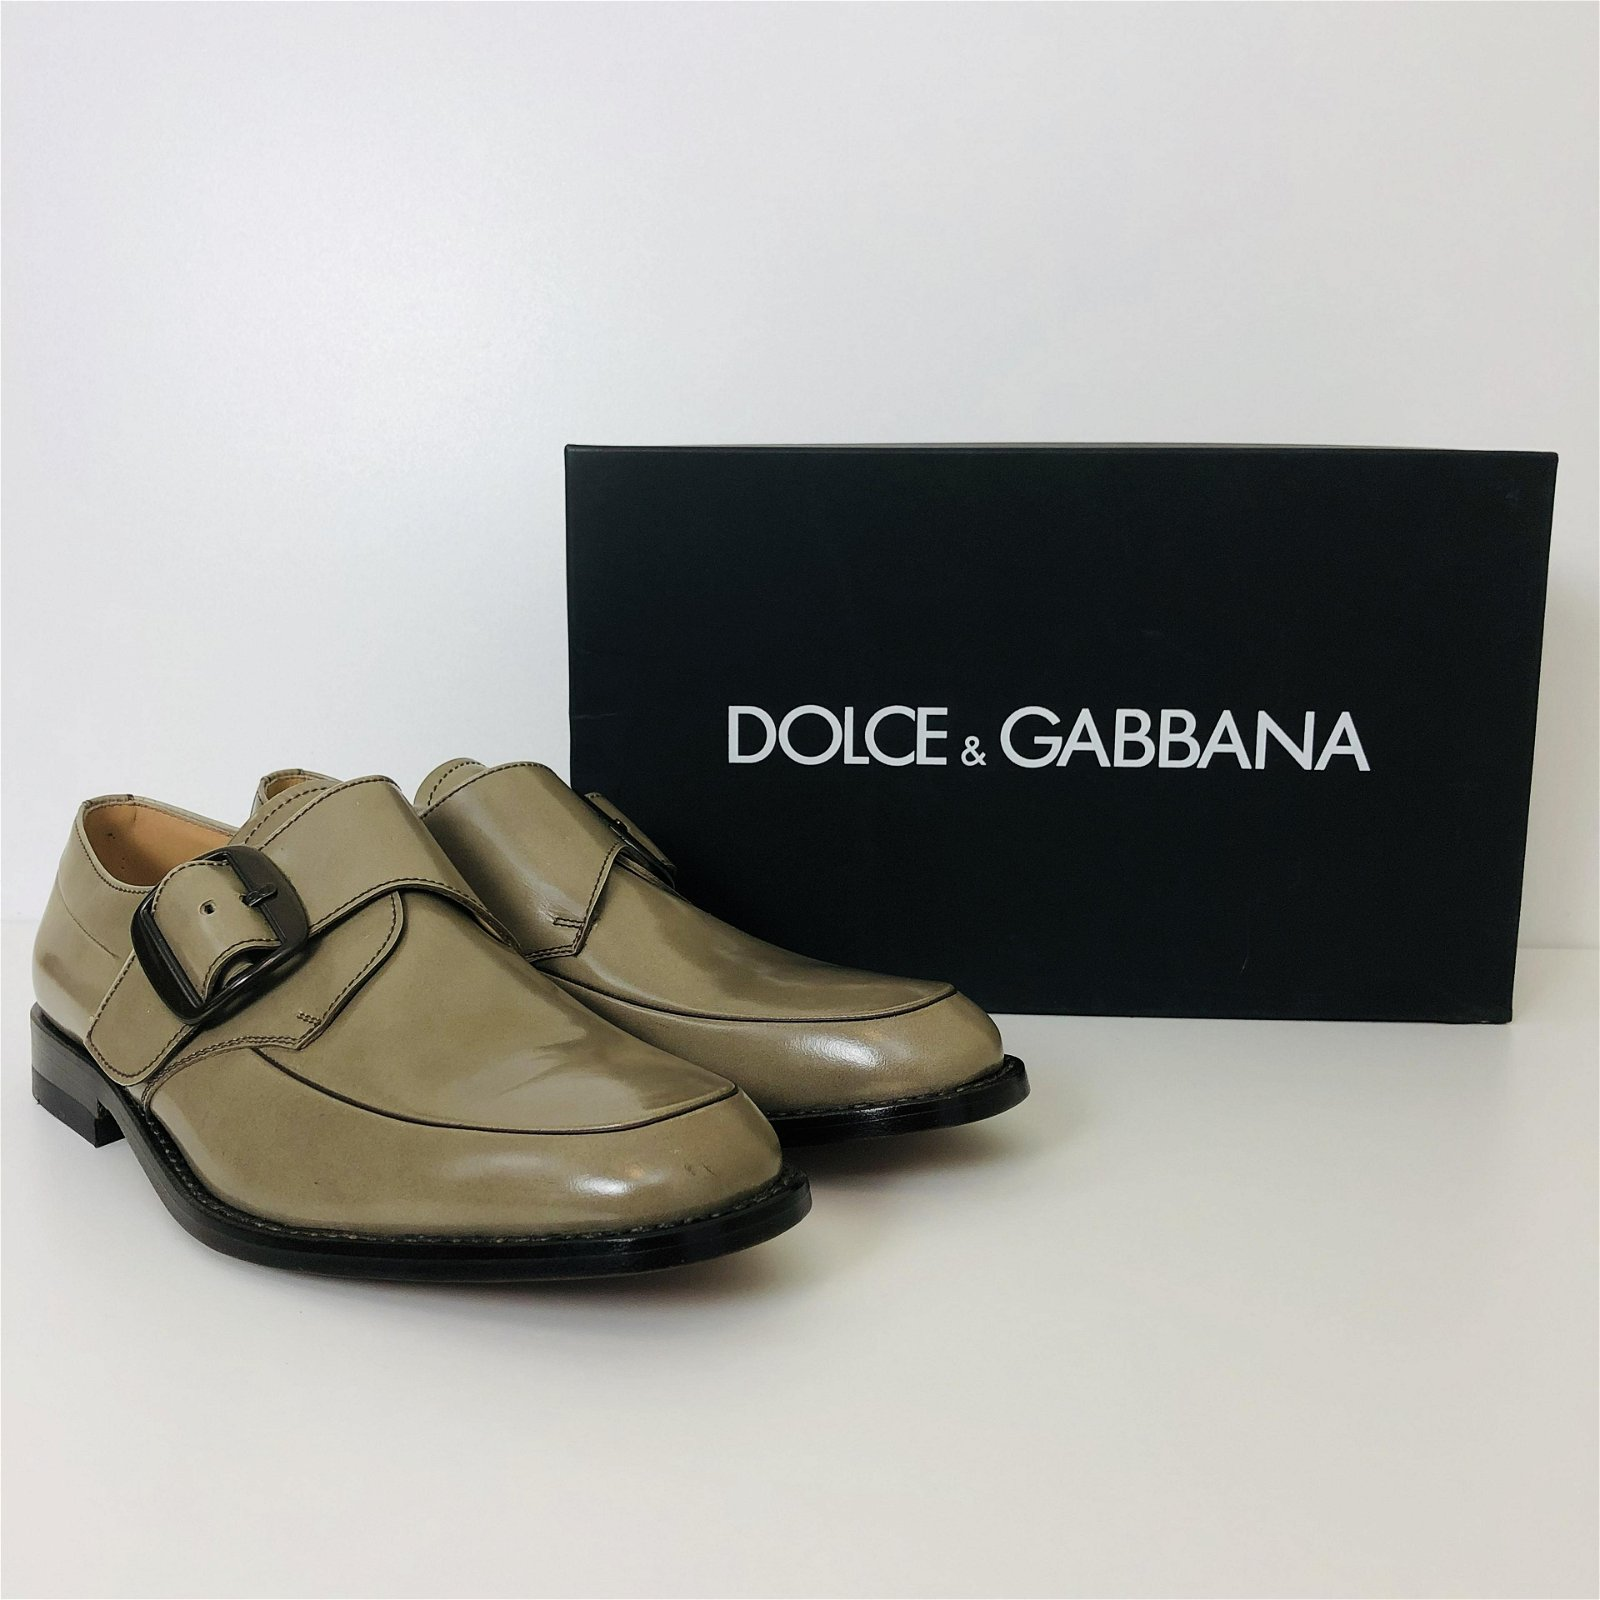 Men's Dolce & Gabbana Leather Loafers Shoes US 10